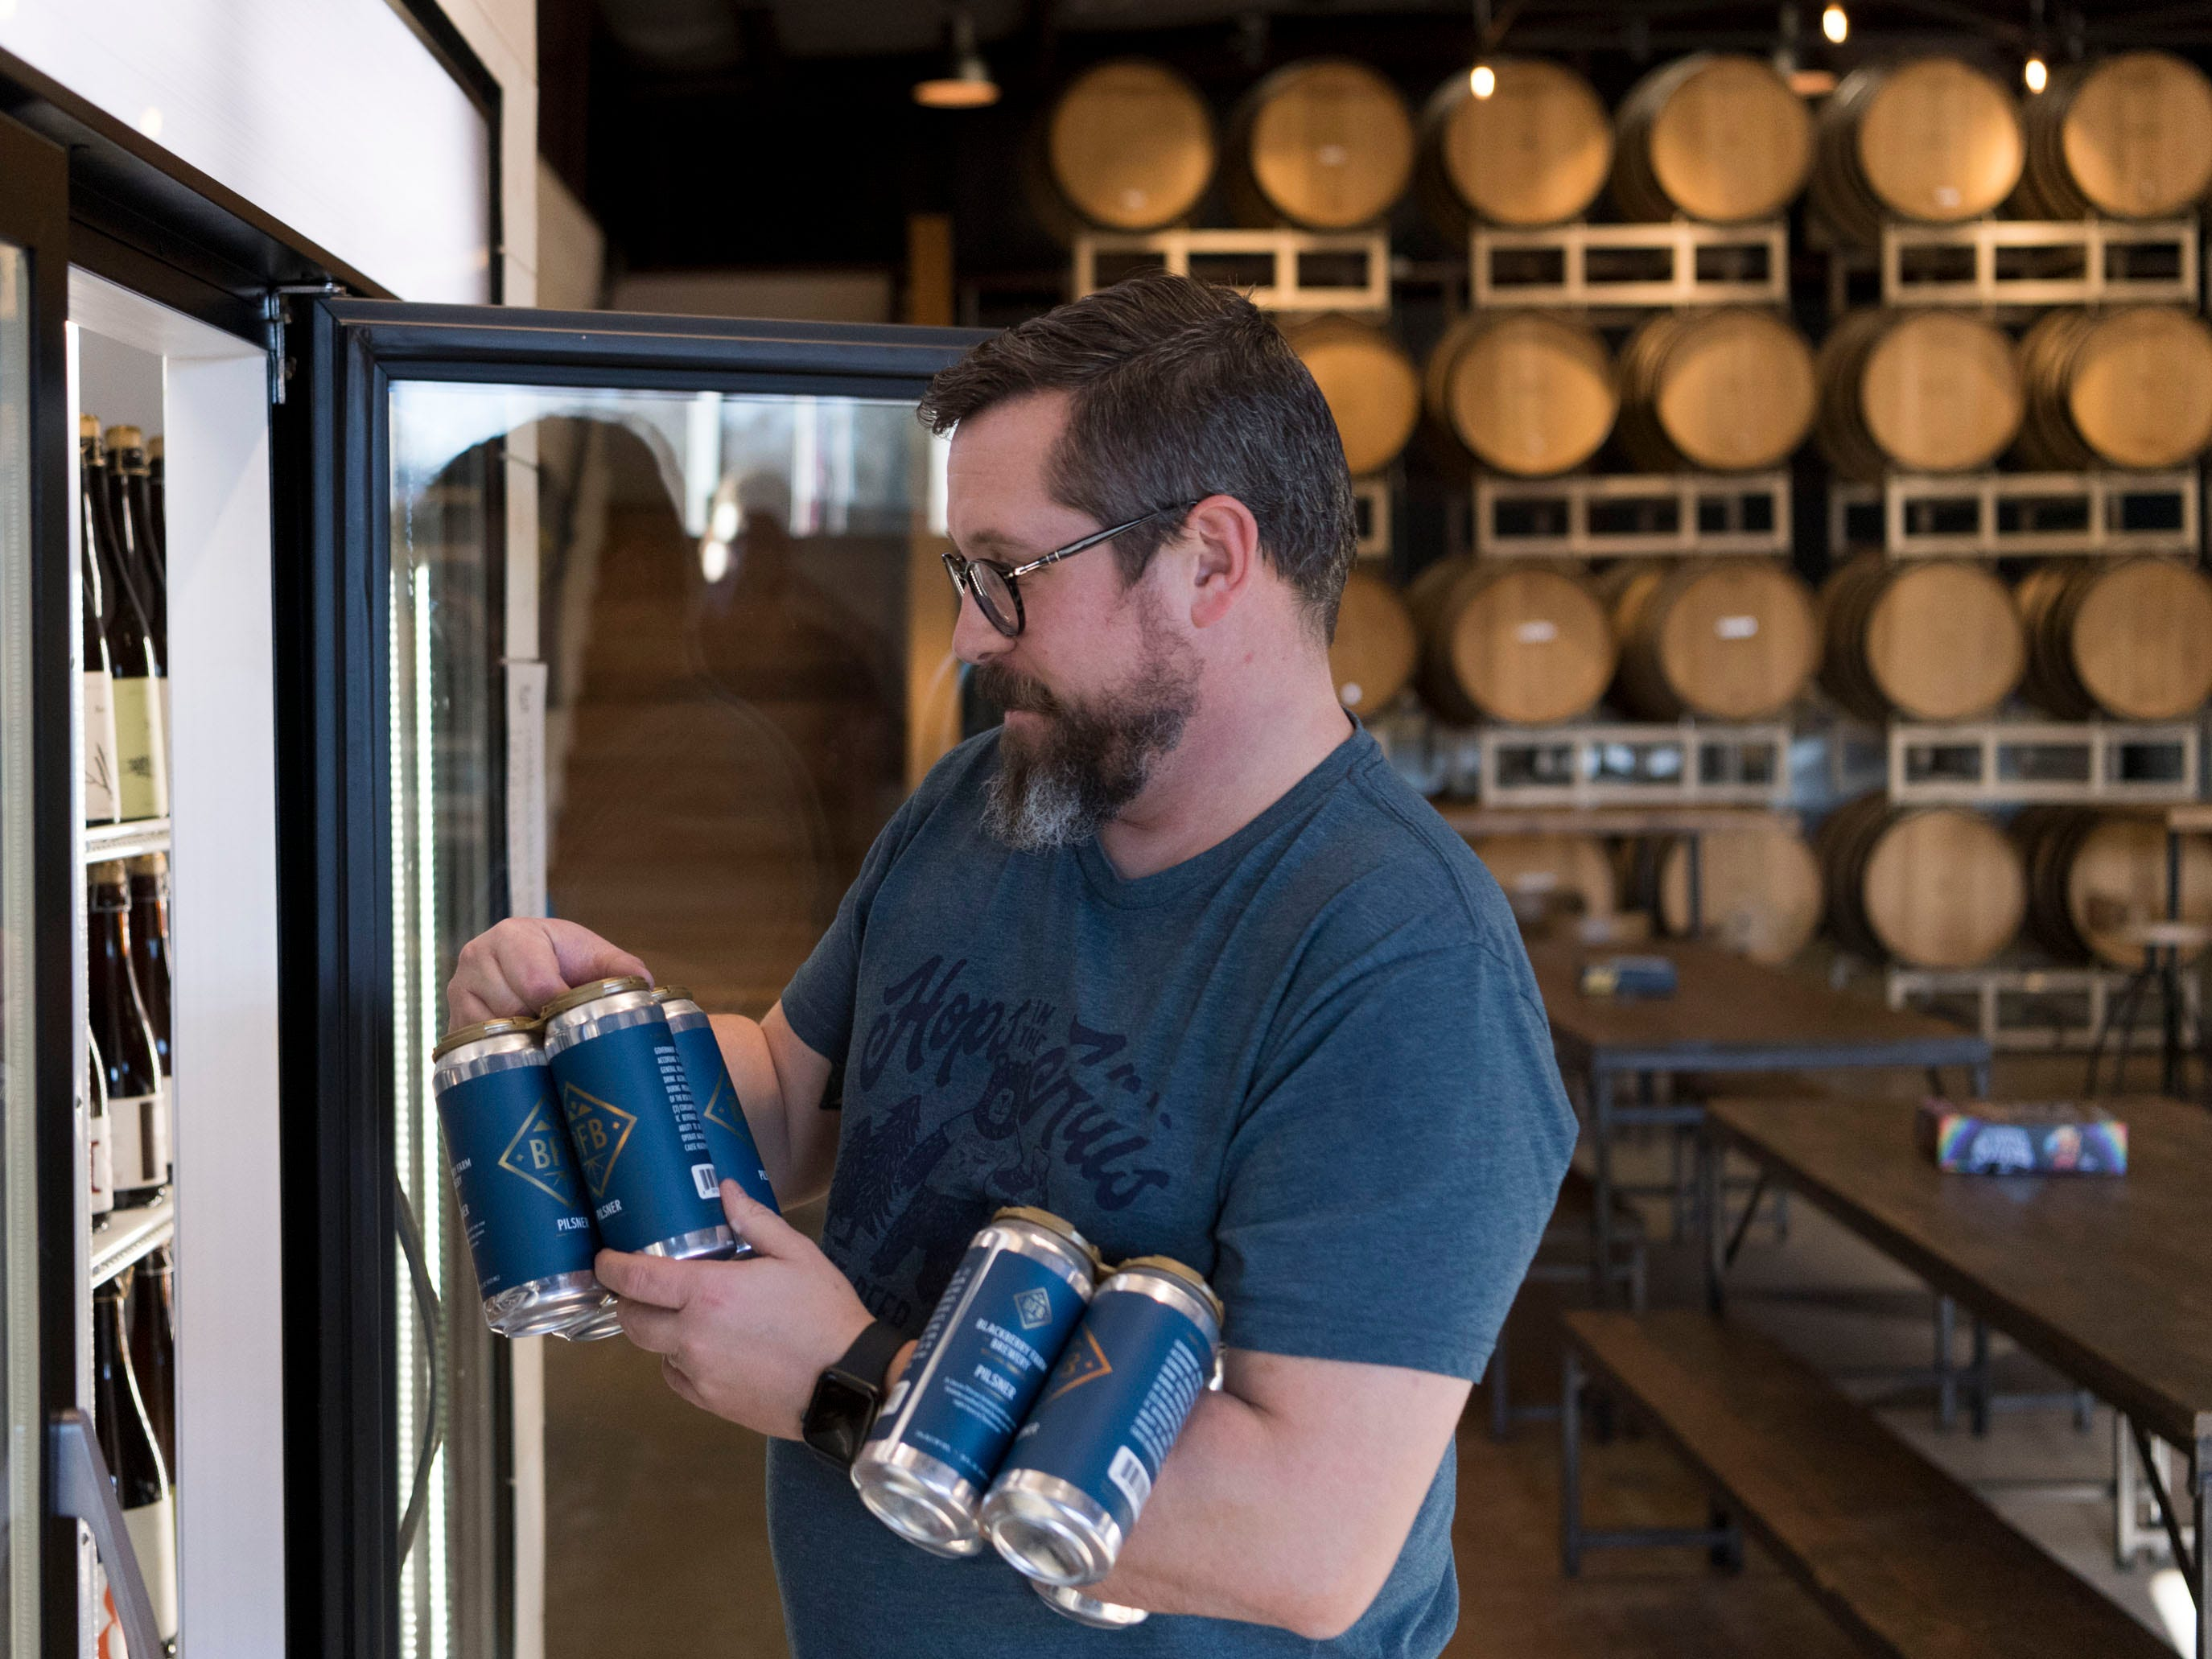 Andrew Noye, brewery manager at Blackberry Farm Brewery, stocks a cooler with two exclusive brews, the Scream Bock dark wheat ale and a pilsner on Wednesday, January 9, 2019.